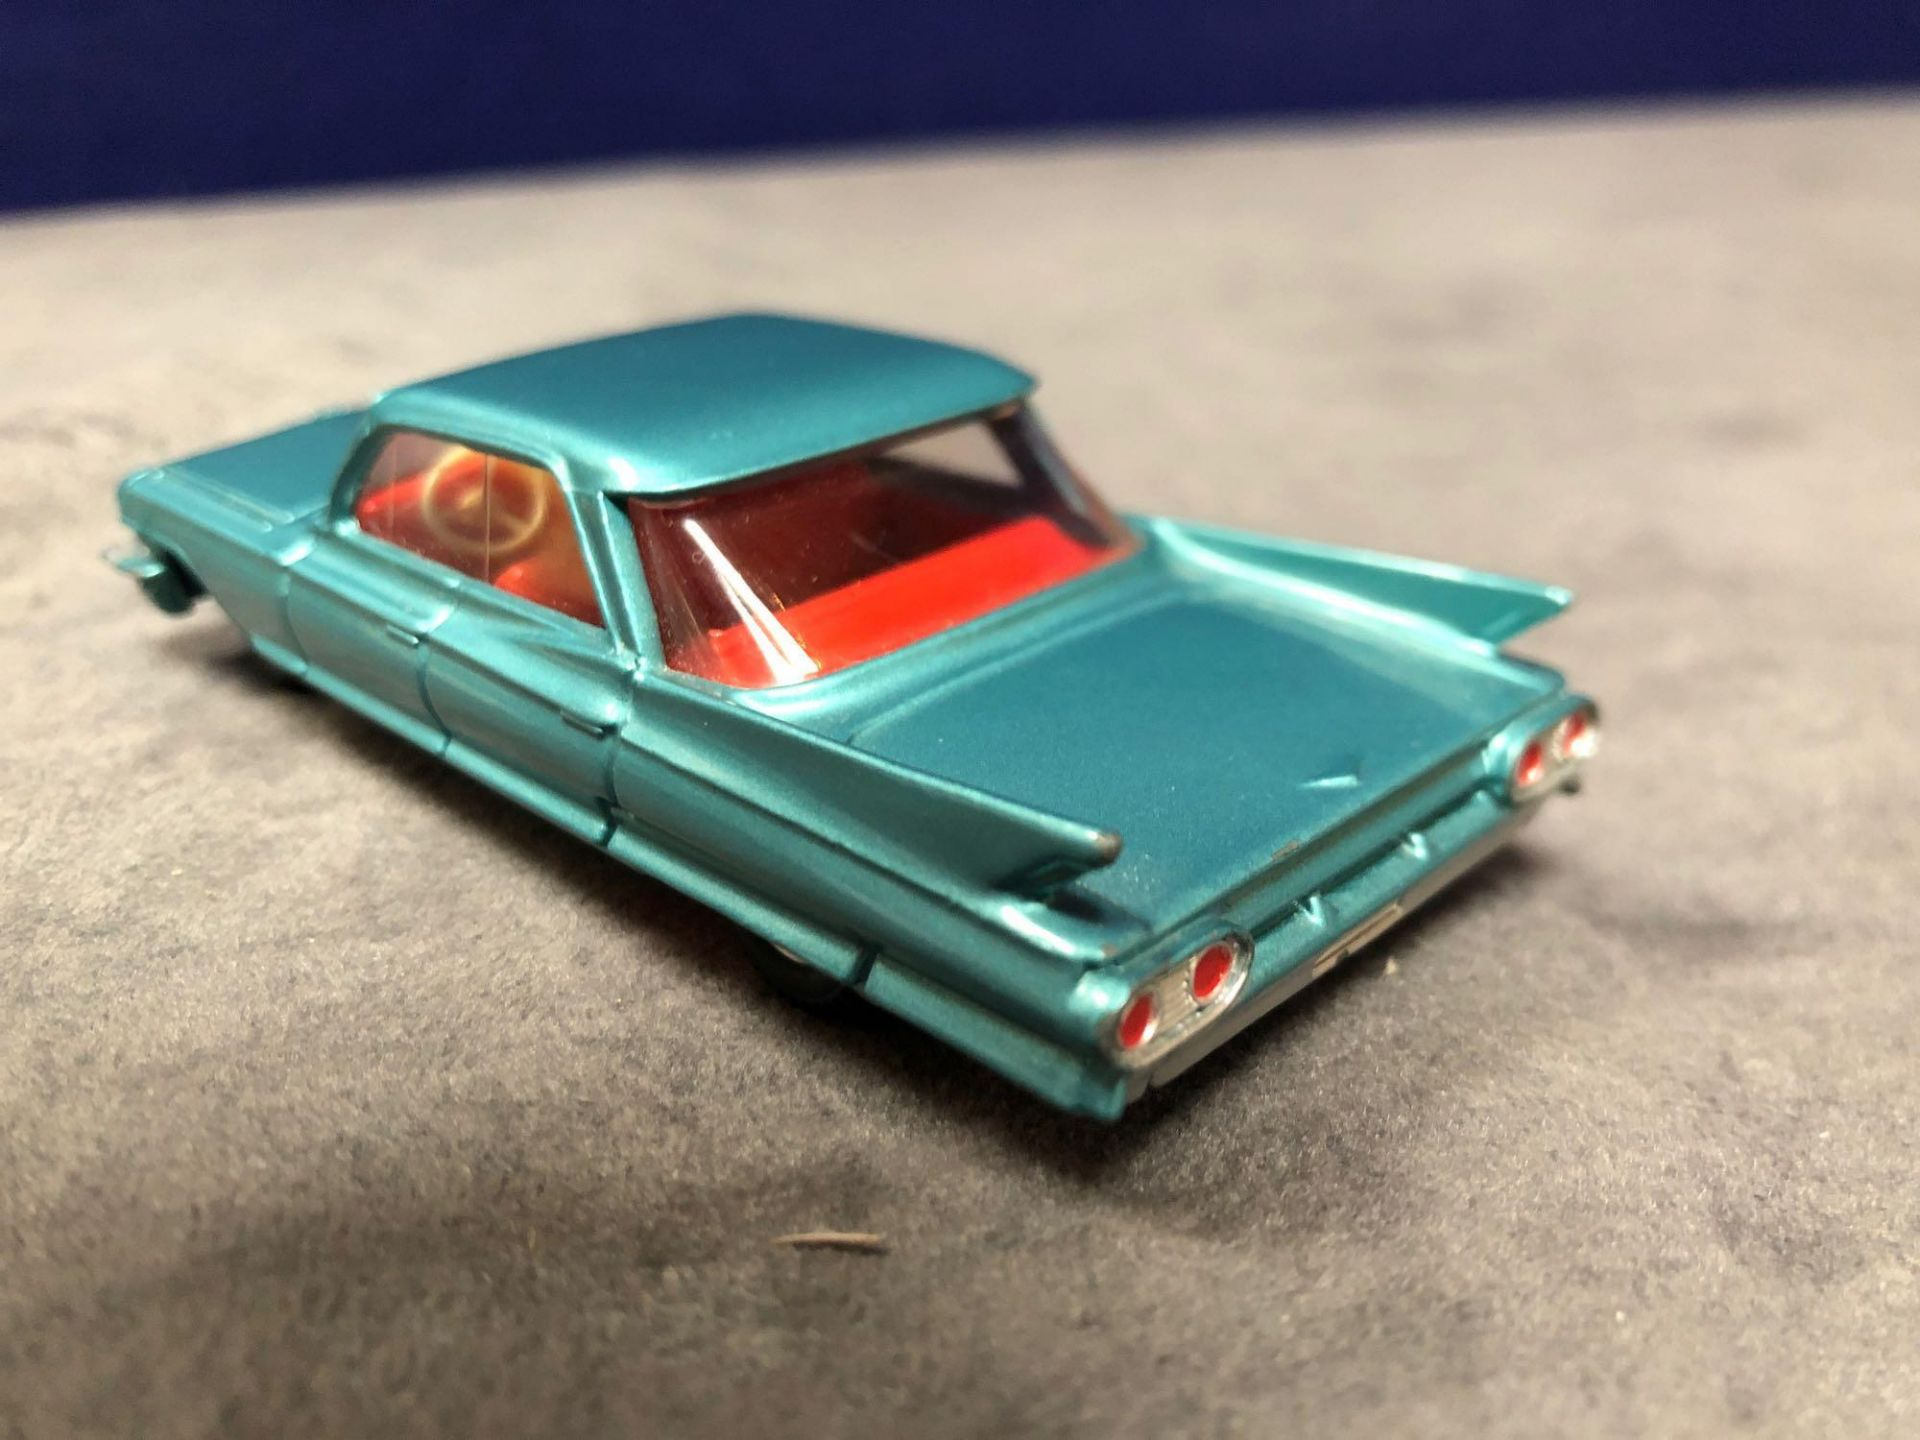 Dinky #147 Cadillac 62 Metallic Green - Red Interior And Spun Hubs 1962-1969. Unboxed Mint Lovely - Image 2 of 4